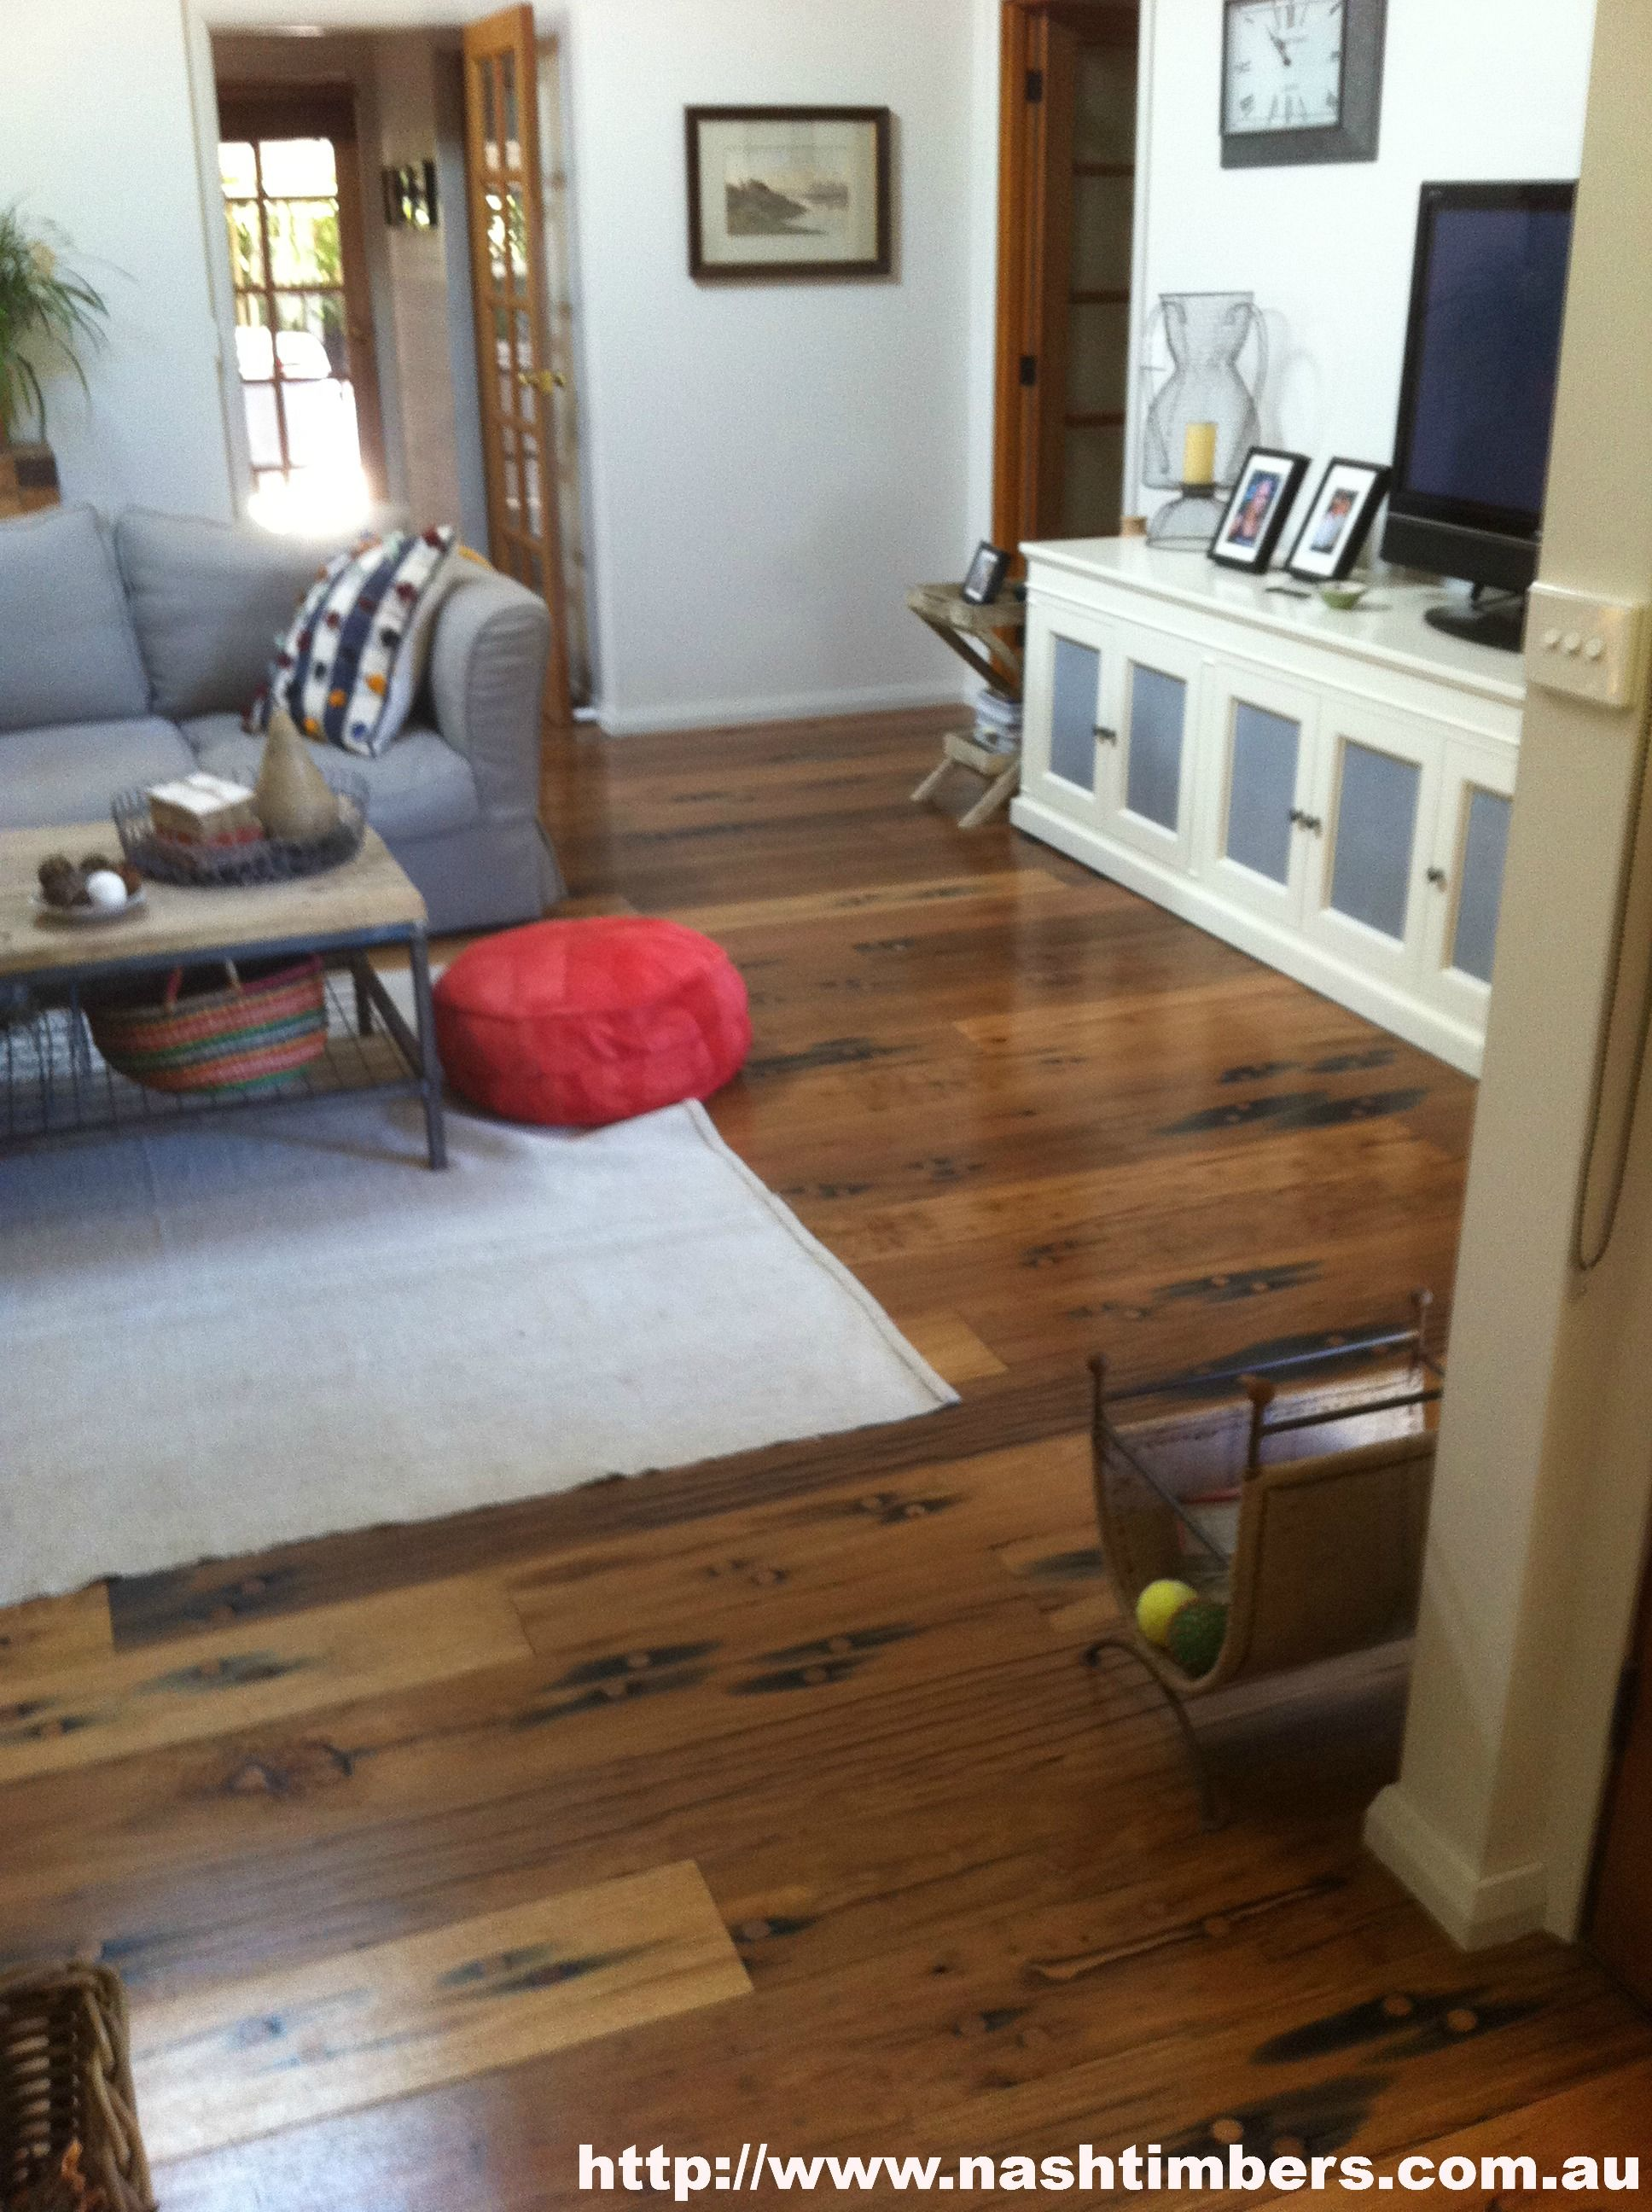 wall ideas wooden hardwood blonde of ceiling floors and awesome added the light construction design brown floor minimalist white home modern for with